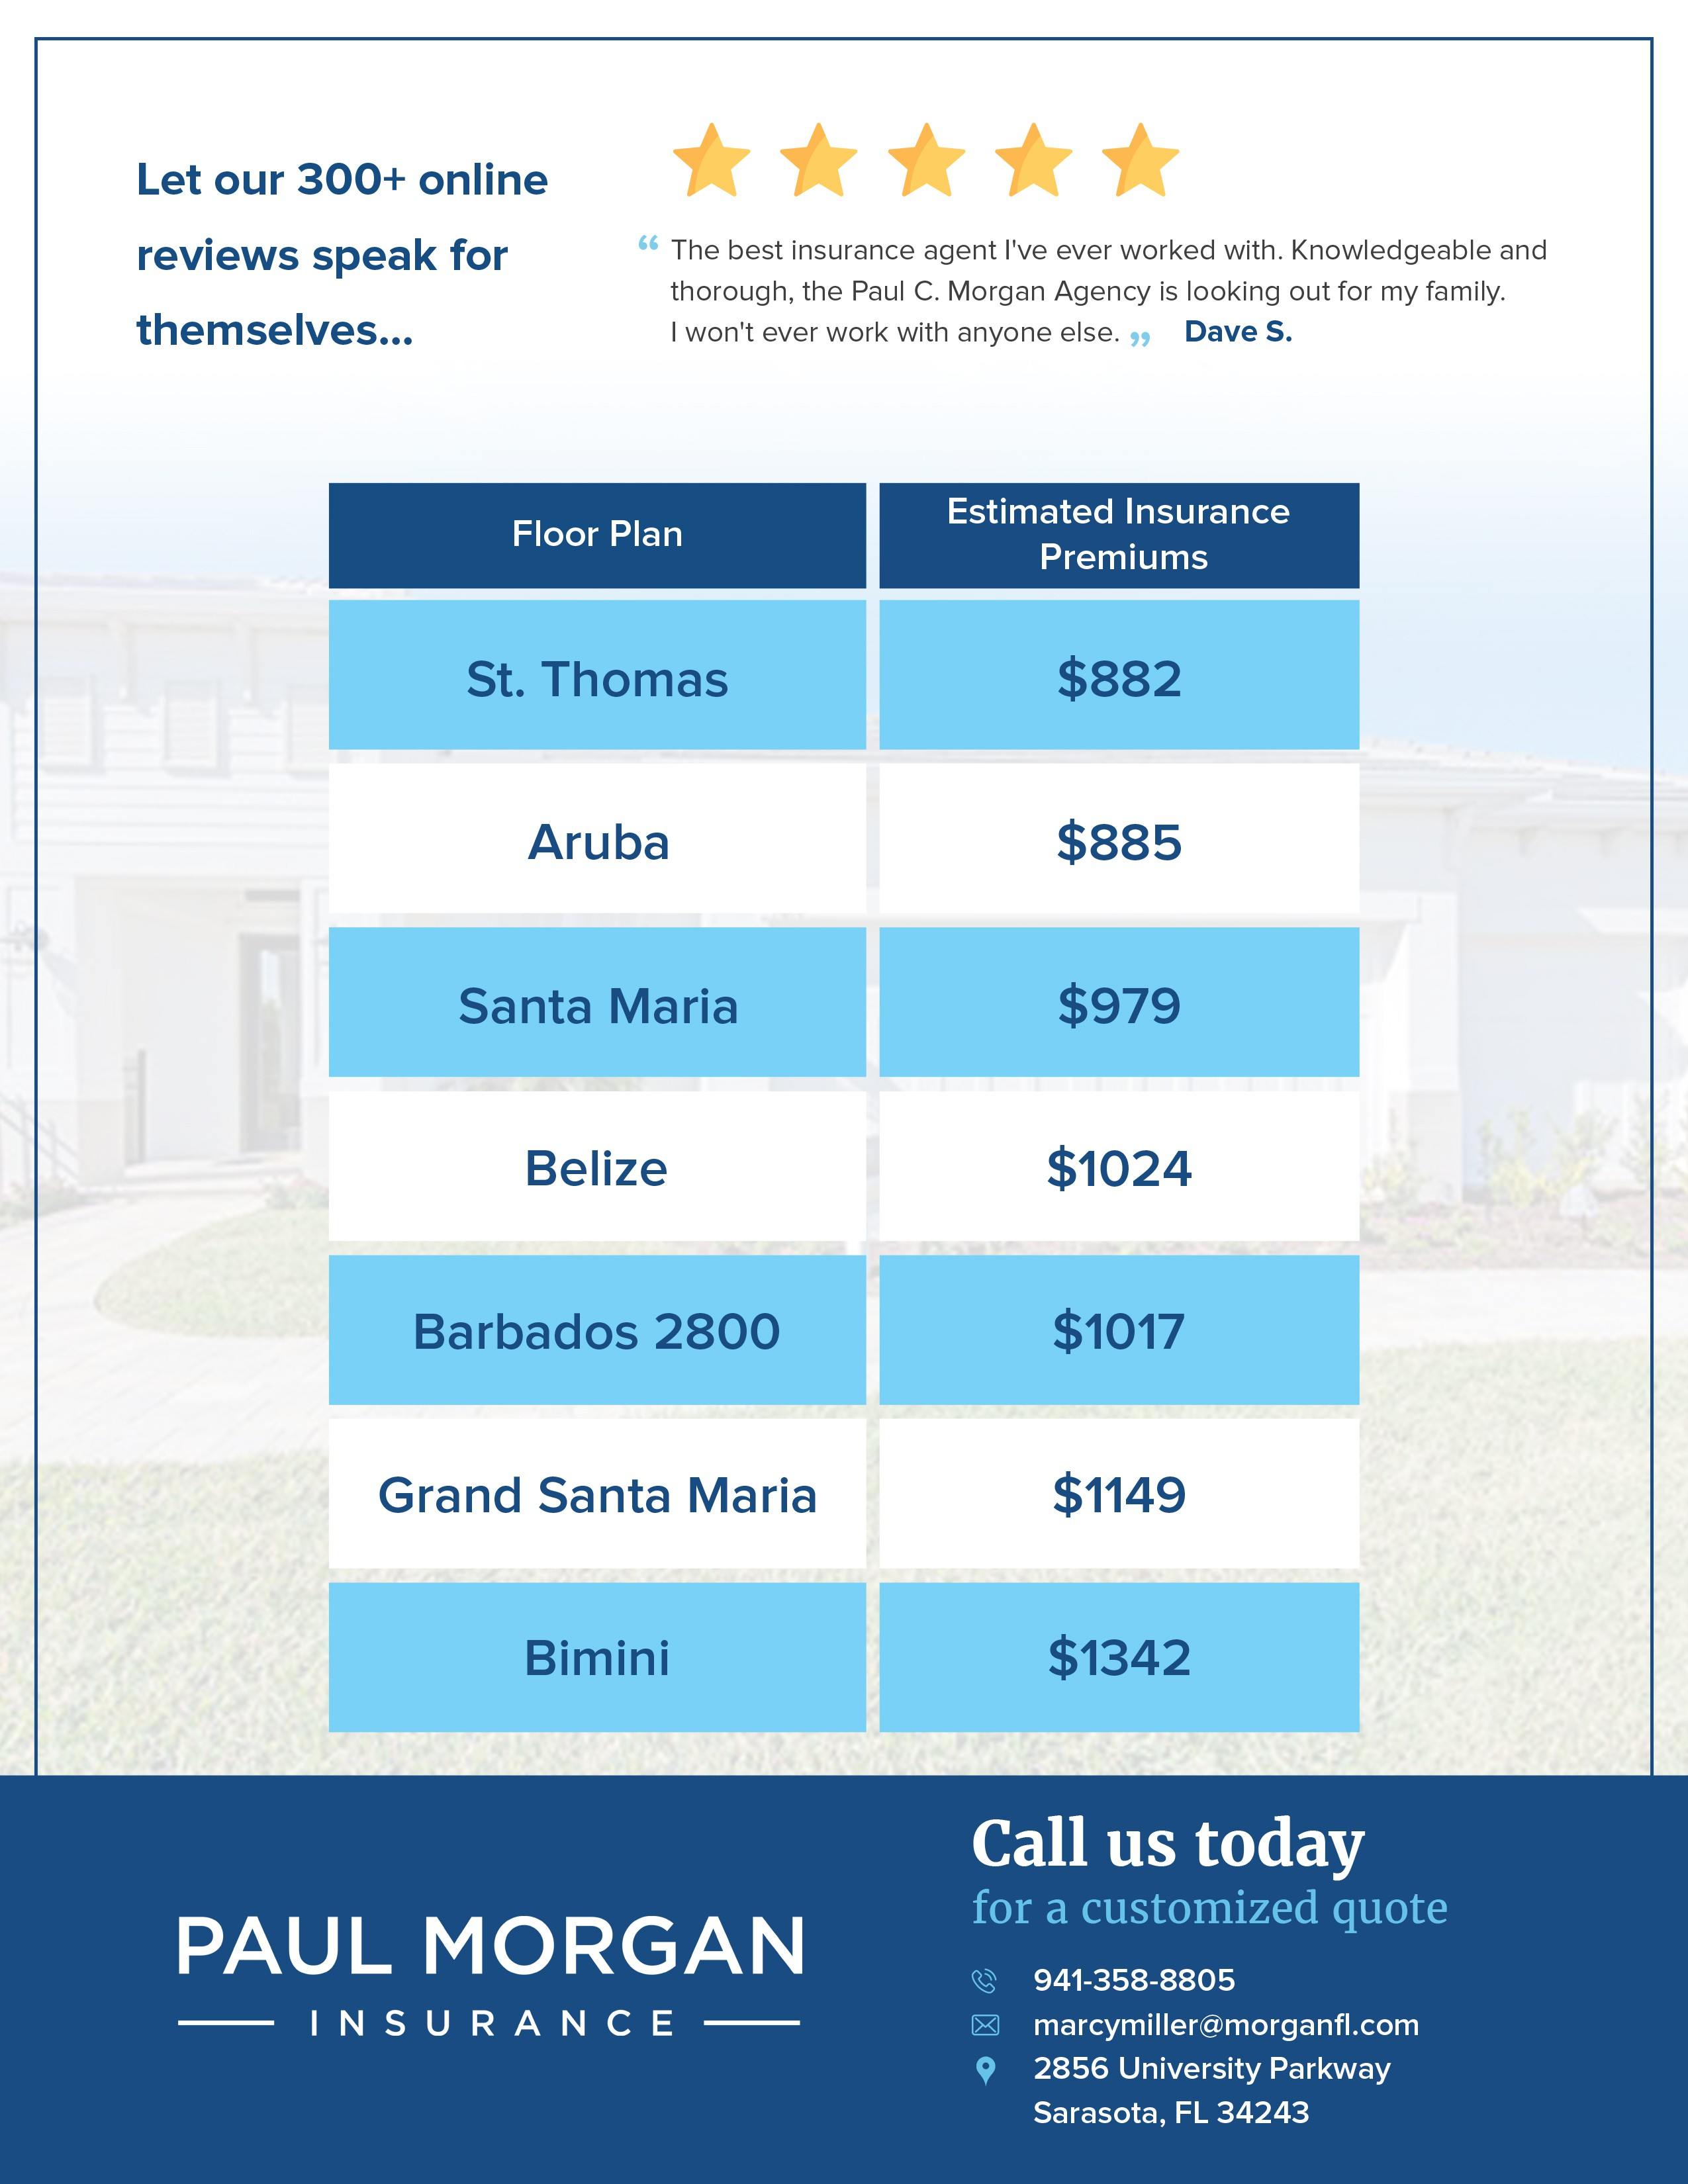 Design a professional, clean, and catchy flier to get homebuyers to call our agency for a quote